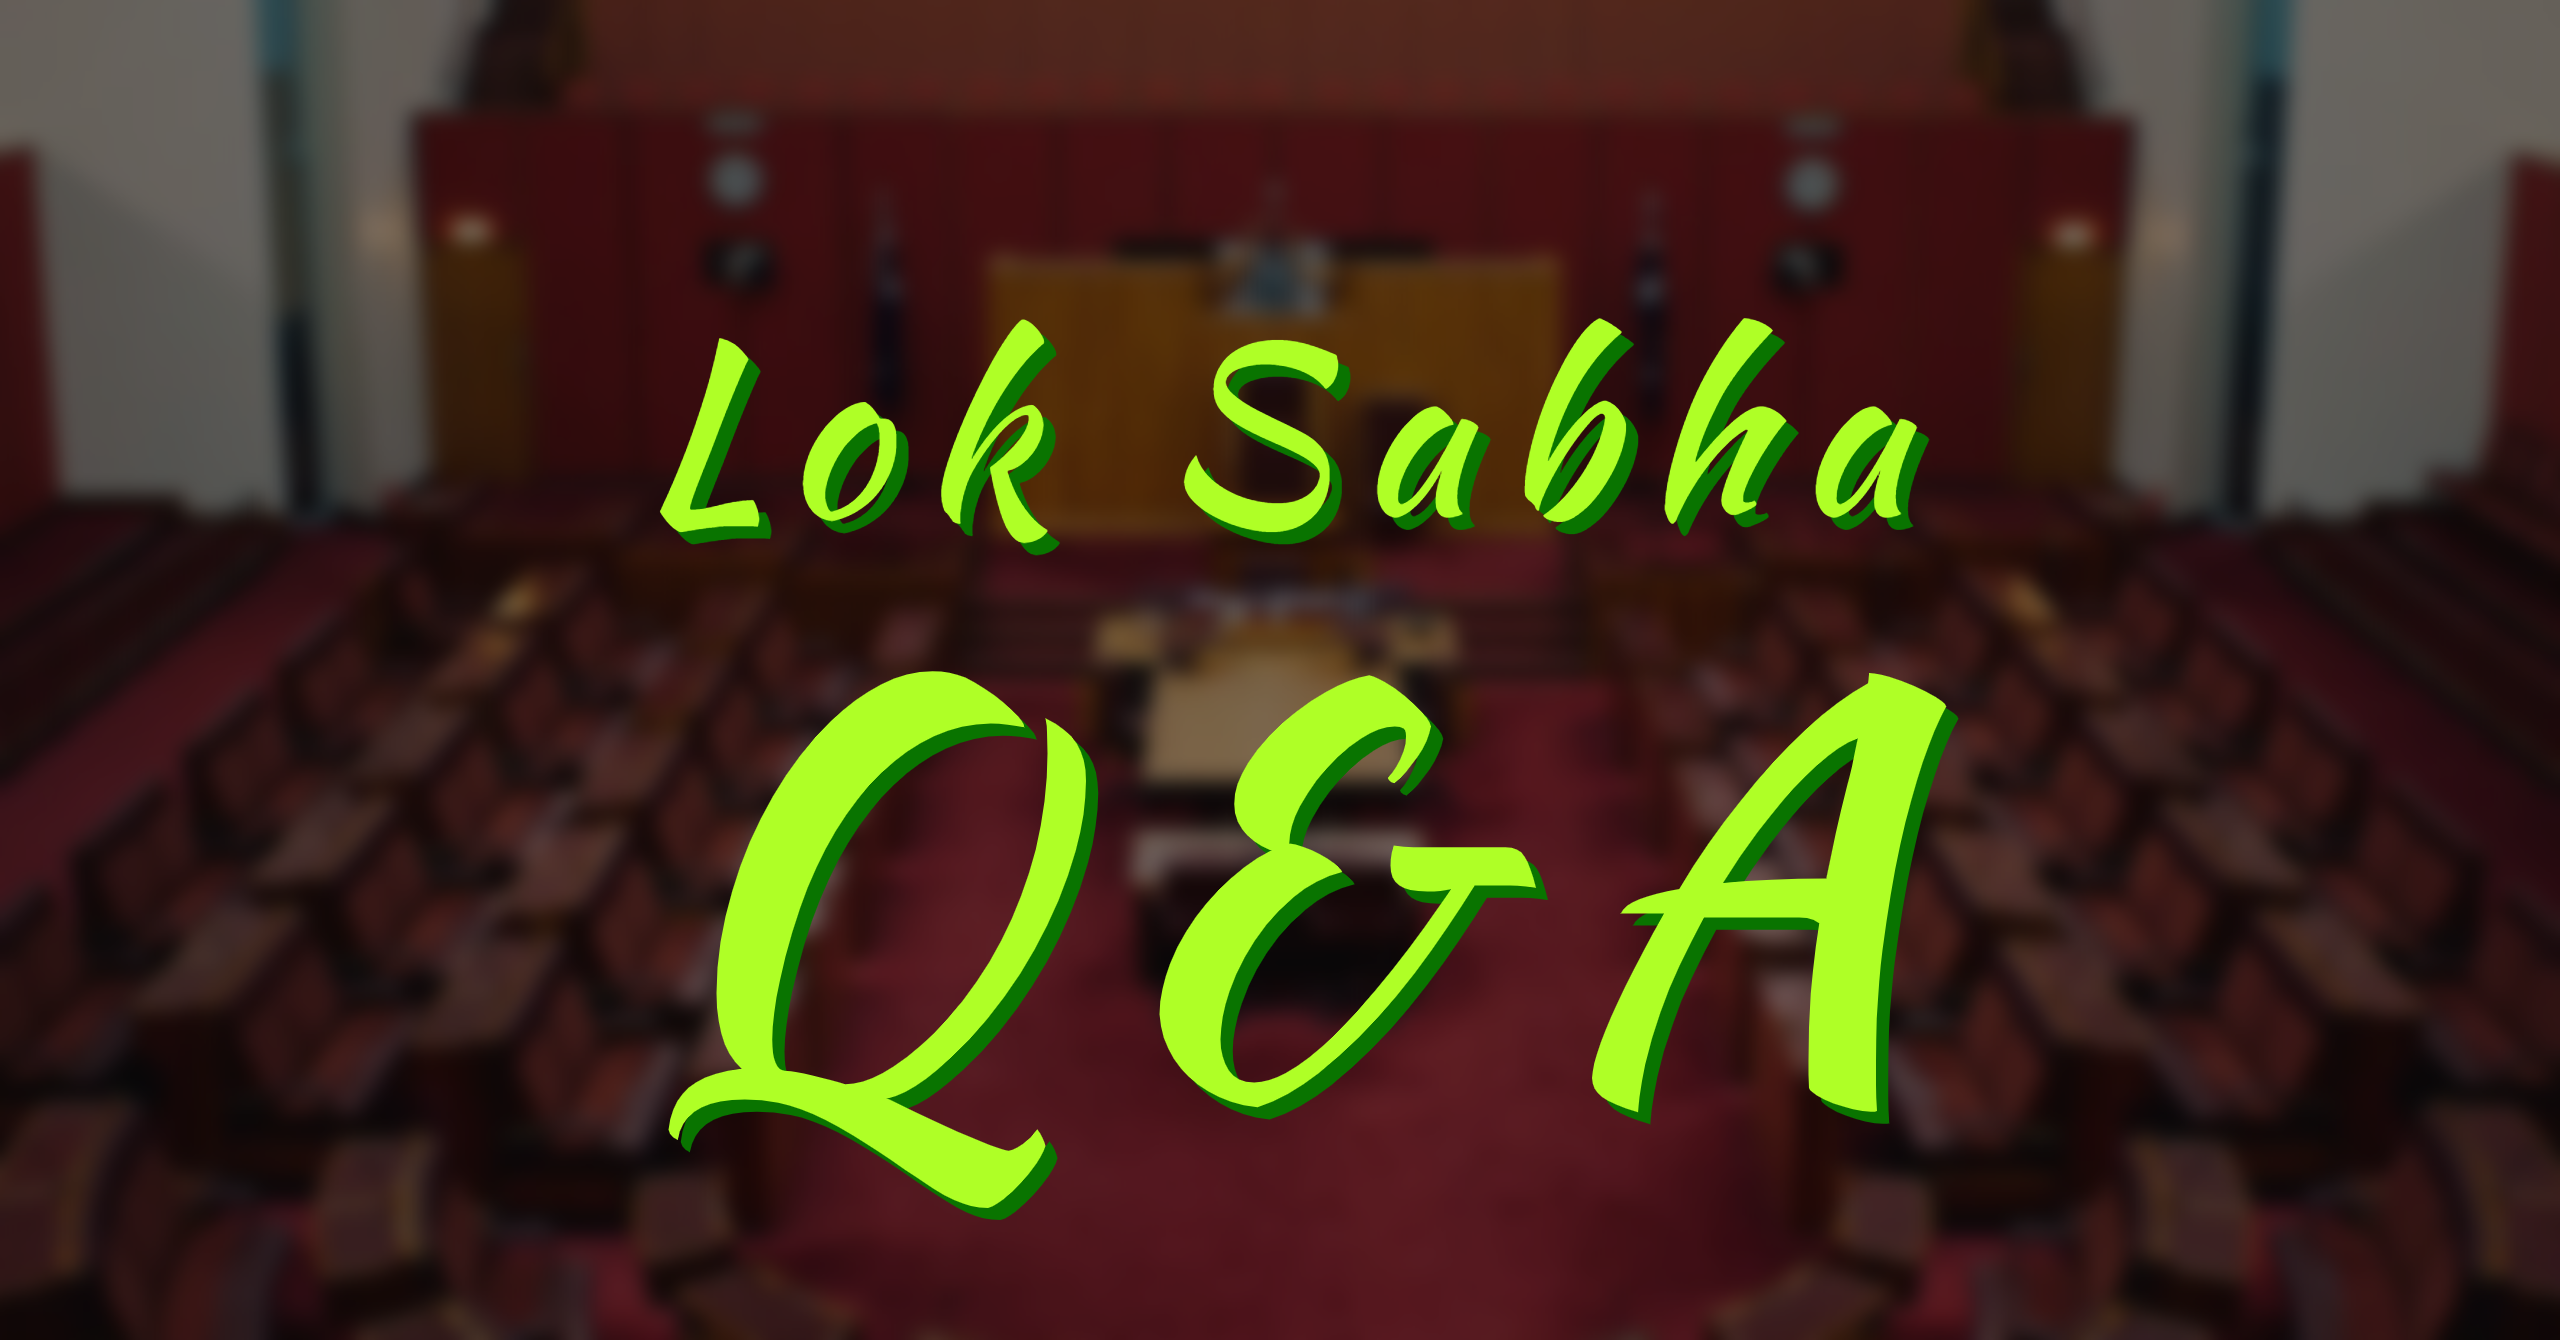 Latest Lok Sabha News